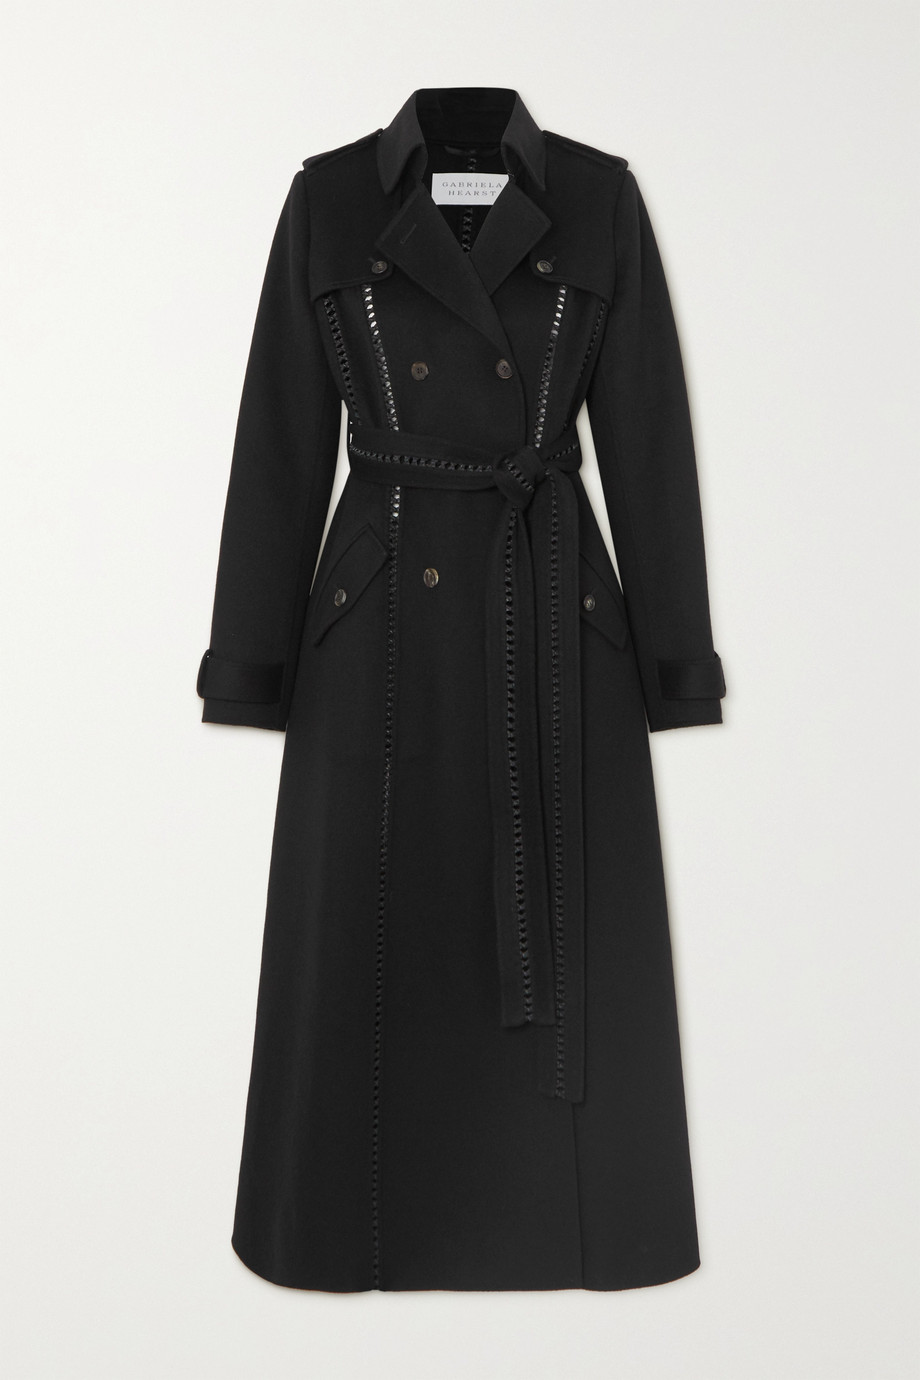 Gabriela Hearst Franz belted leather-trimmed cashmere trench coat